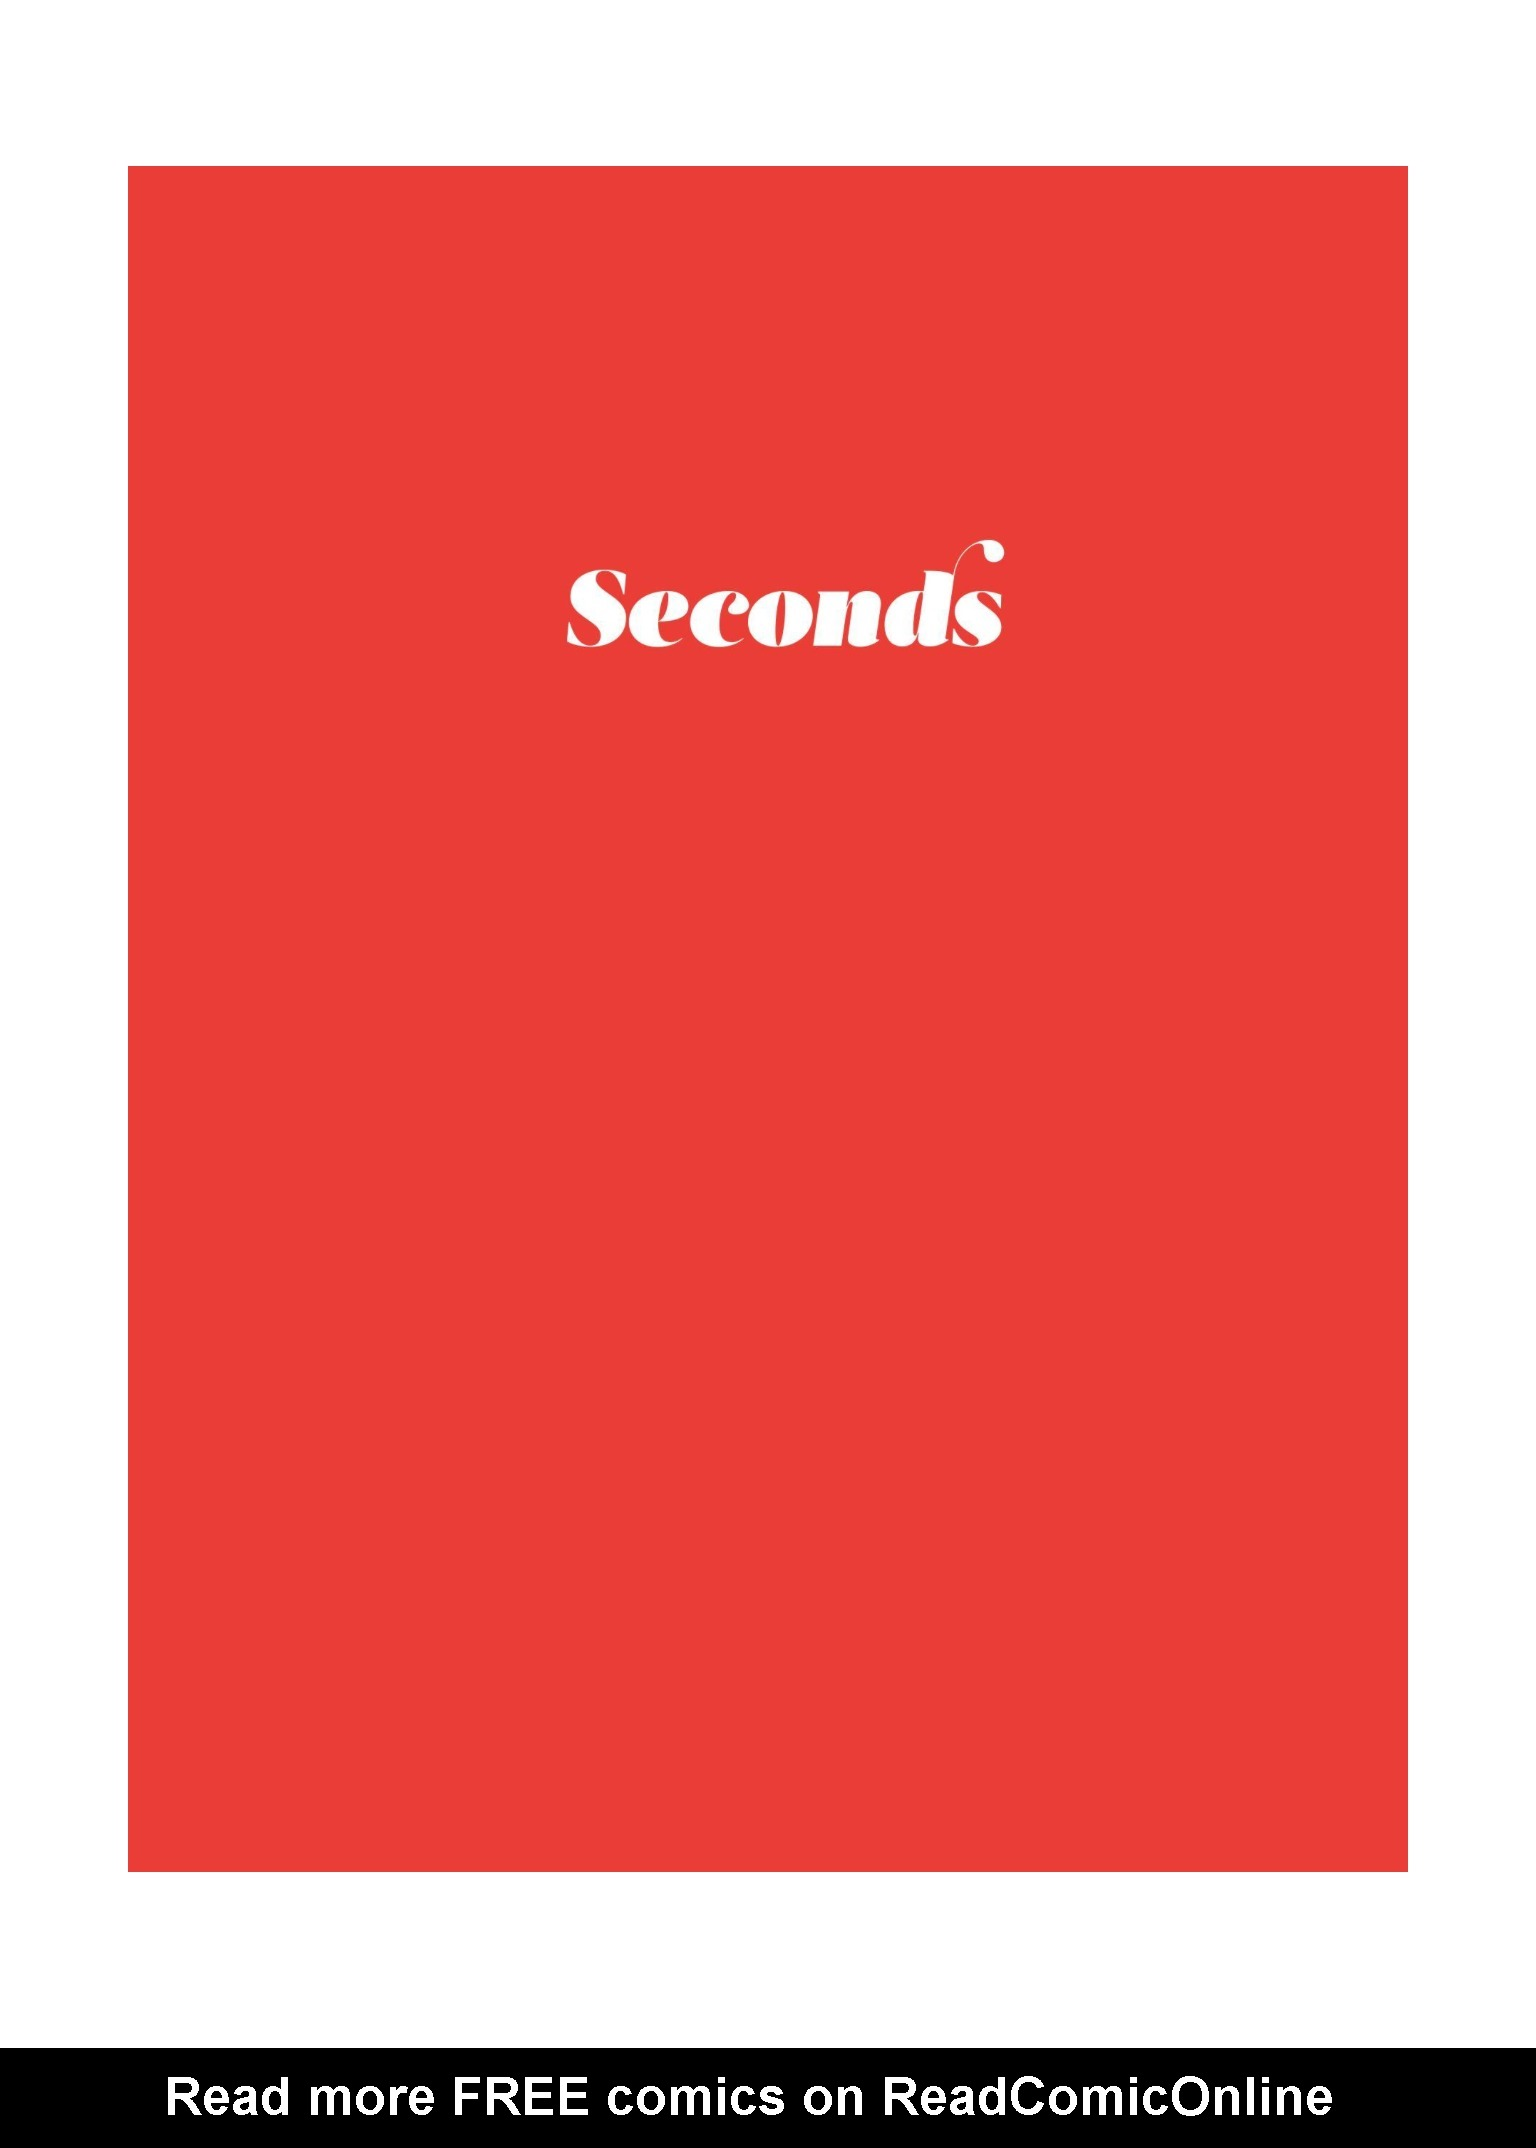 Read online Seconds comic -  Issue # Full - 3